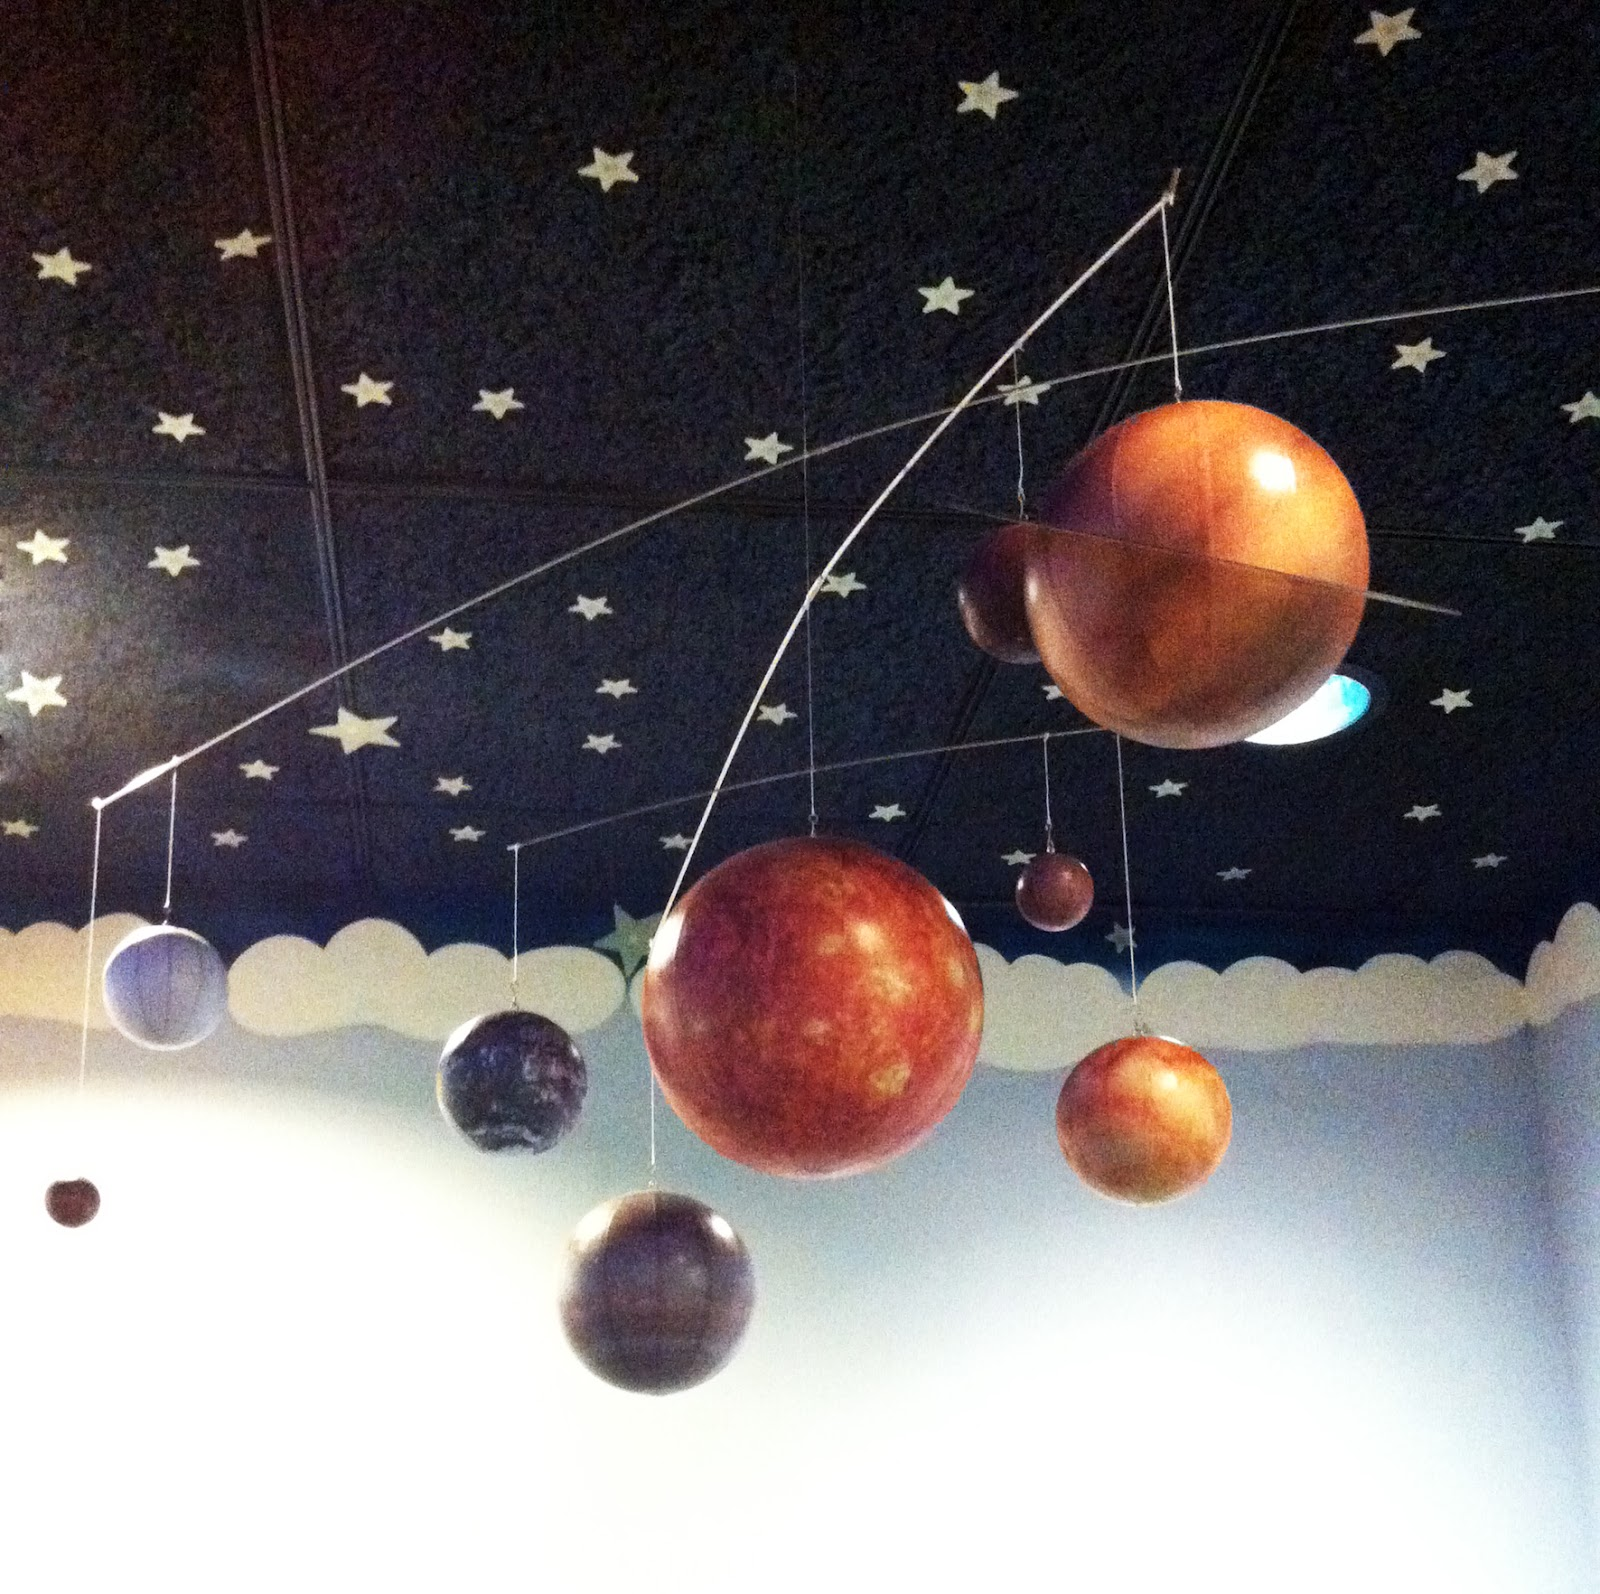 solar system on ceiling paint - photo #28